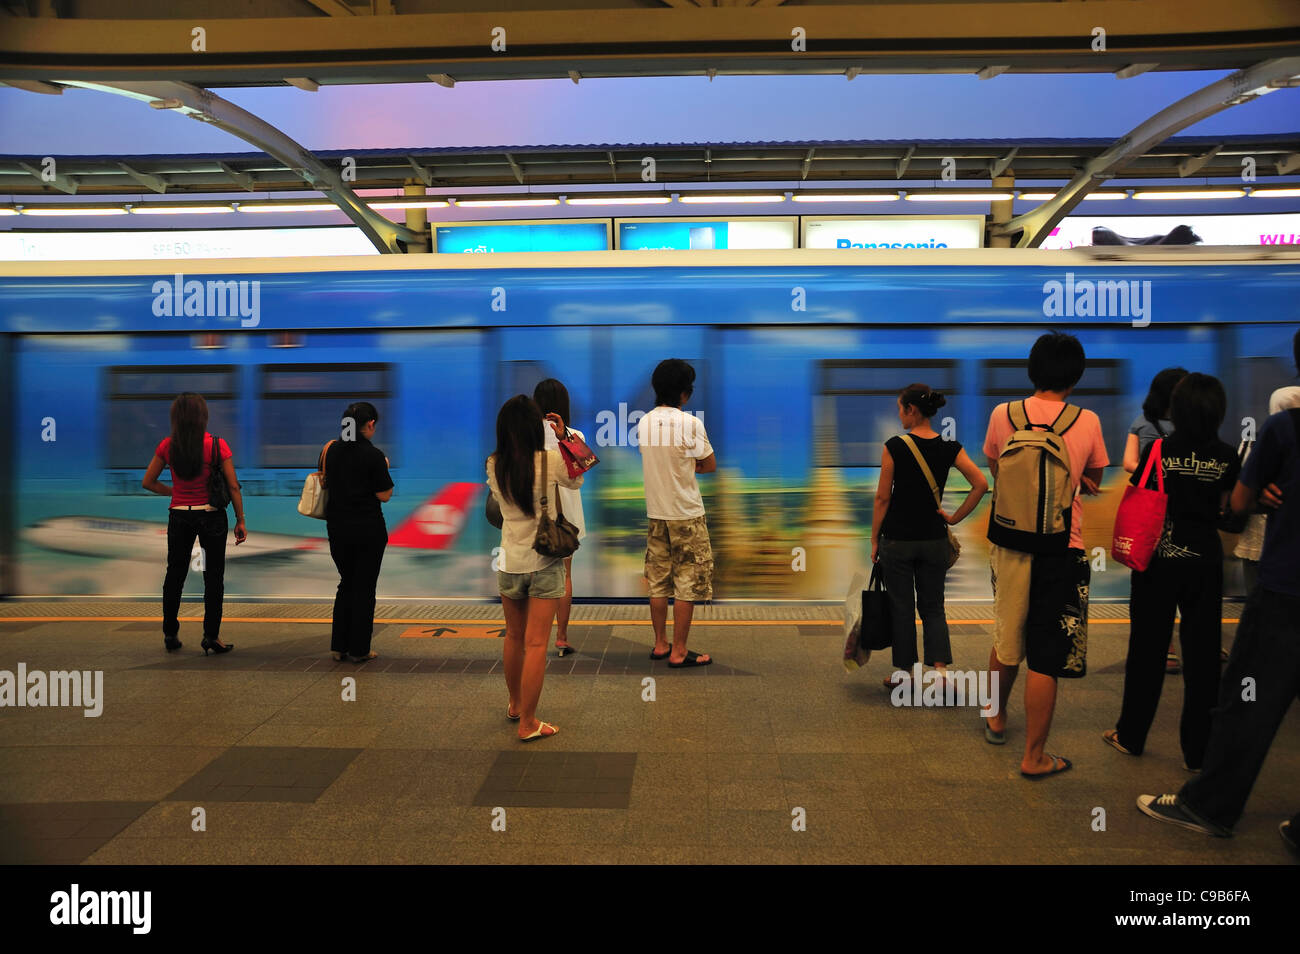 Passengers waiting for the sky train at BTS Siam Square station, Siam Square, Bangkok, Thailand - Stock Image